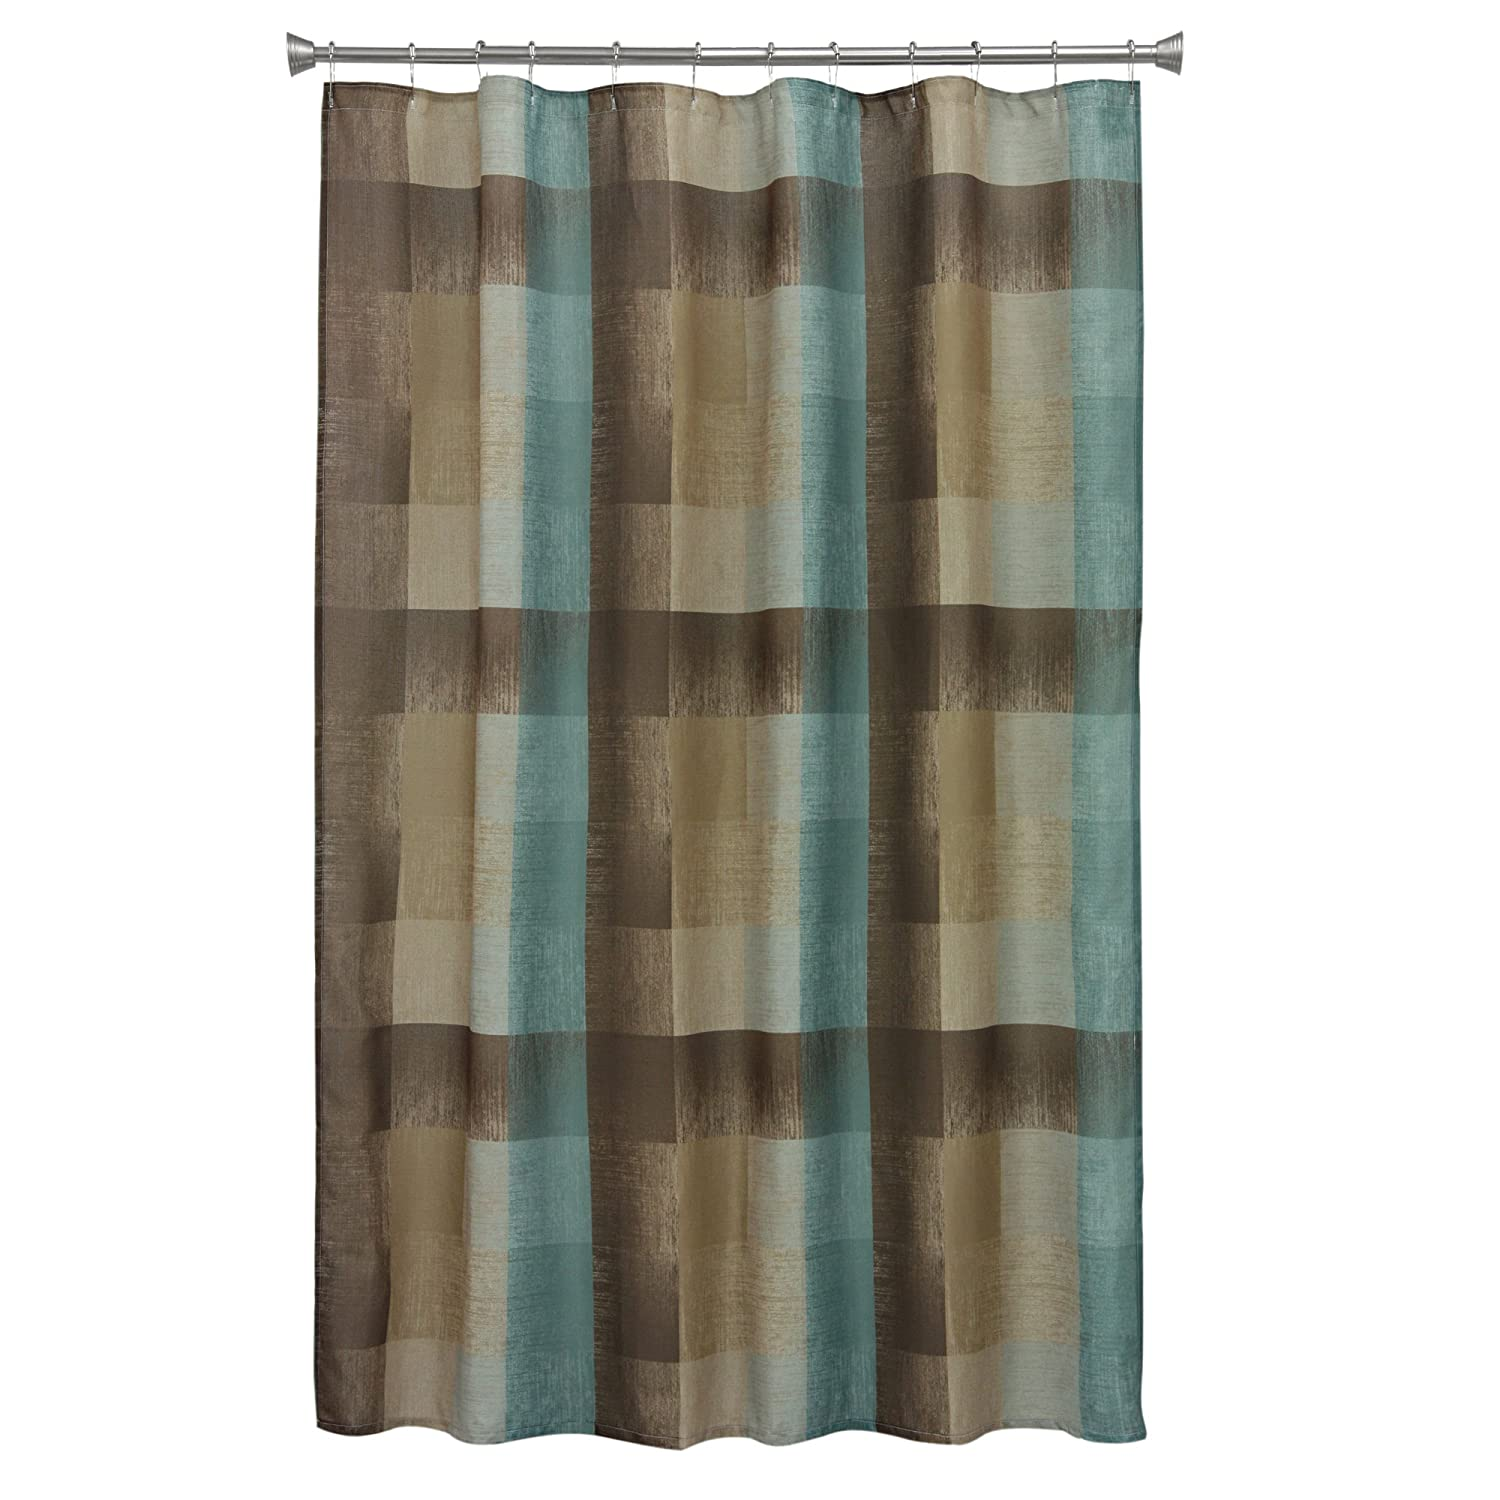 Amazoncom Bacova Guild Fresh Flannel Shower Curtain  By - Brown and turquoise shower curtain